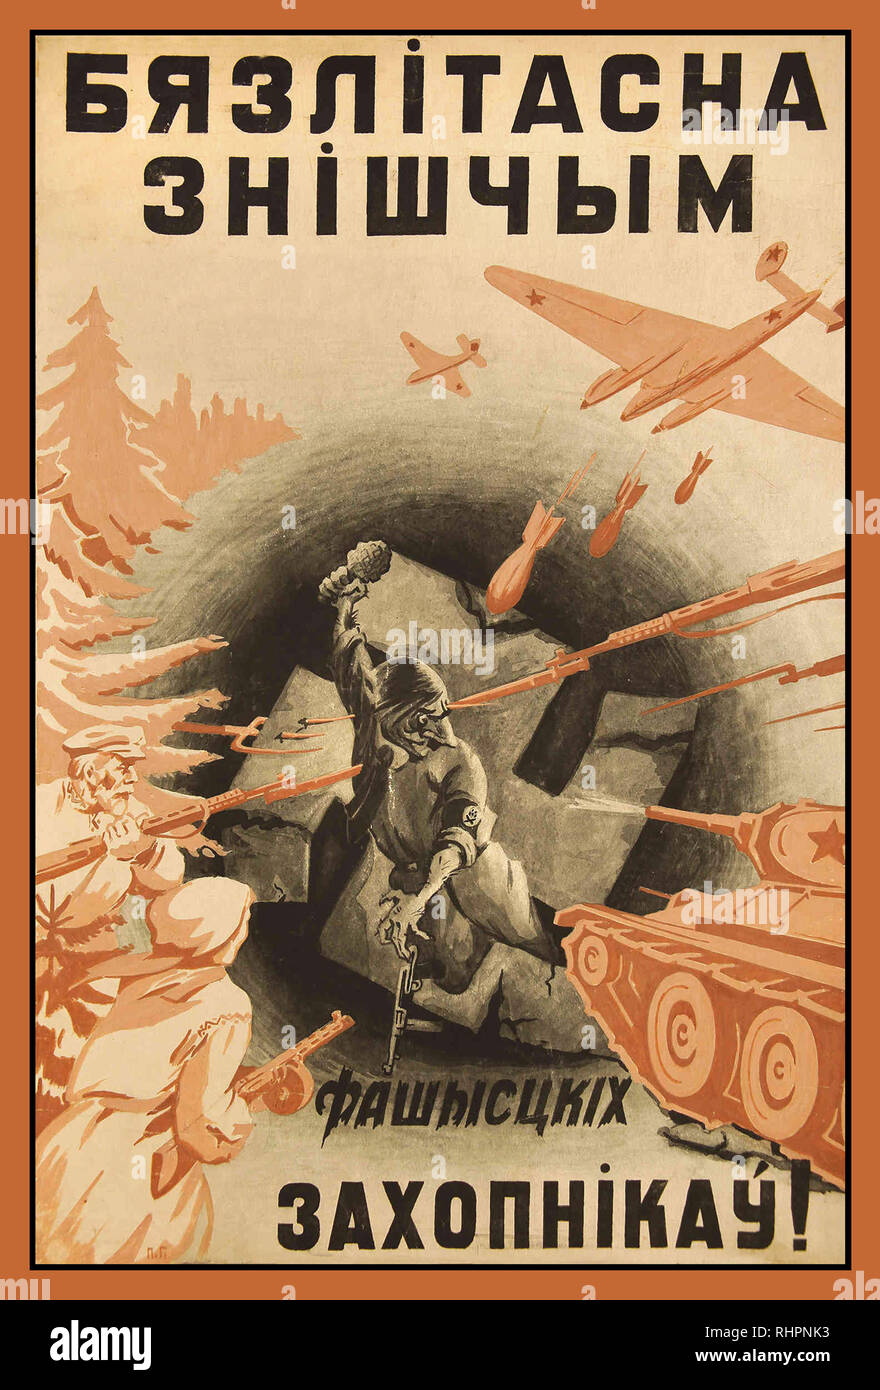 WW2 1940's Propaganda USSR Poster Belarus: Mercilessly destroy the invaders. Poster illustrating Soviet peoples airforce and army USSR Belarus attacking Nazi Germany invaders on the Eastern Front Operation Barbarossa Stock Photo